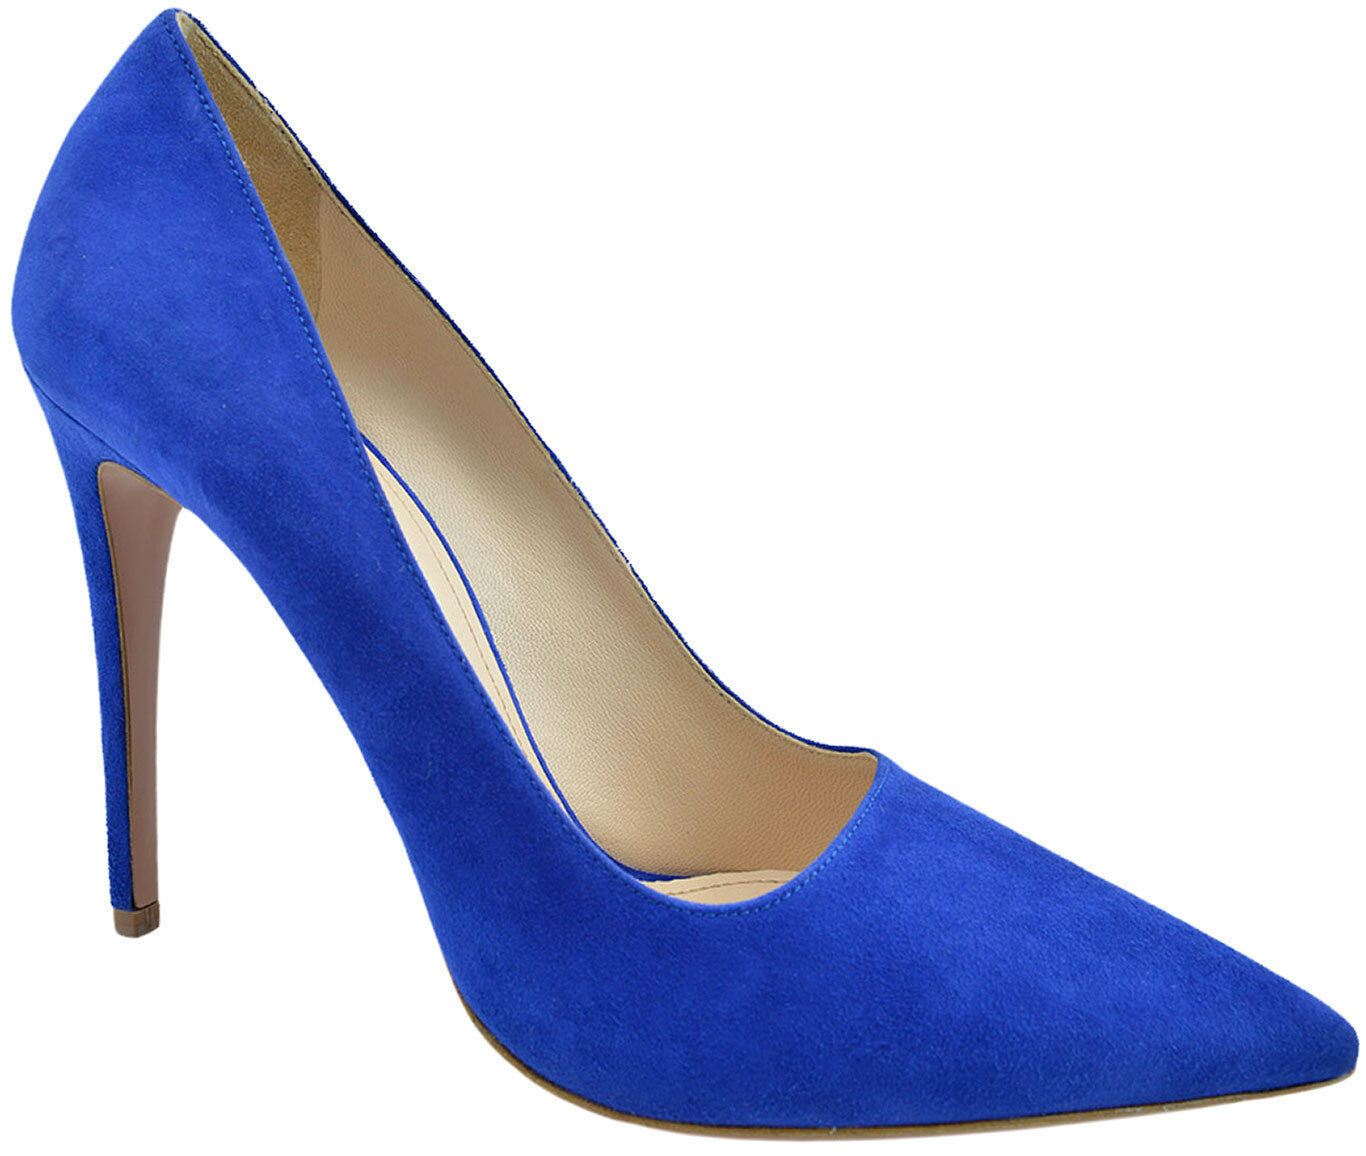 $650 PRADA Blue Suede Leather CAMOSCIO Pumps High Heels 39.5 9.5 NEW COLLECTION